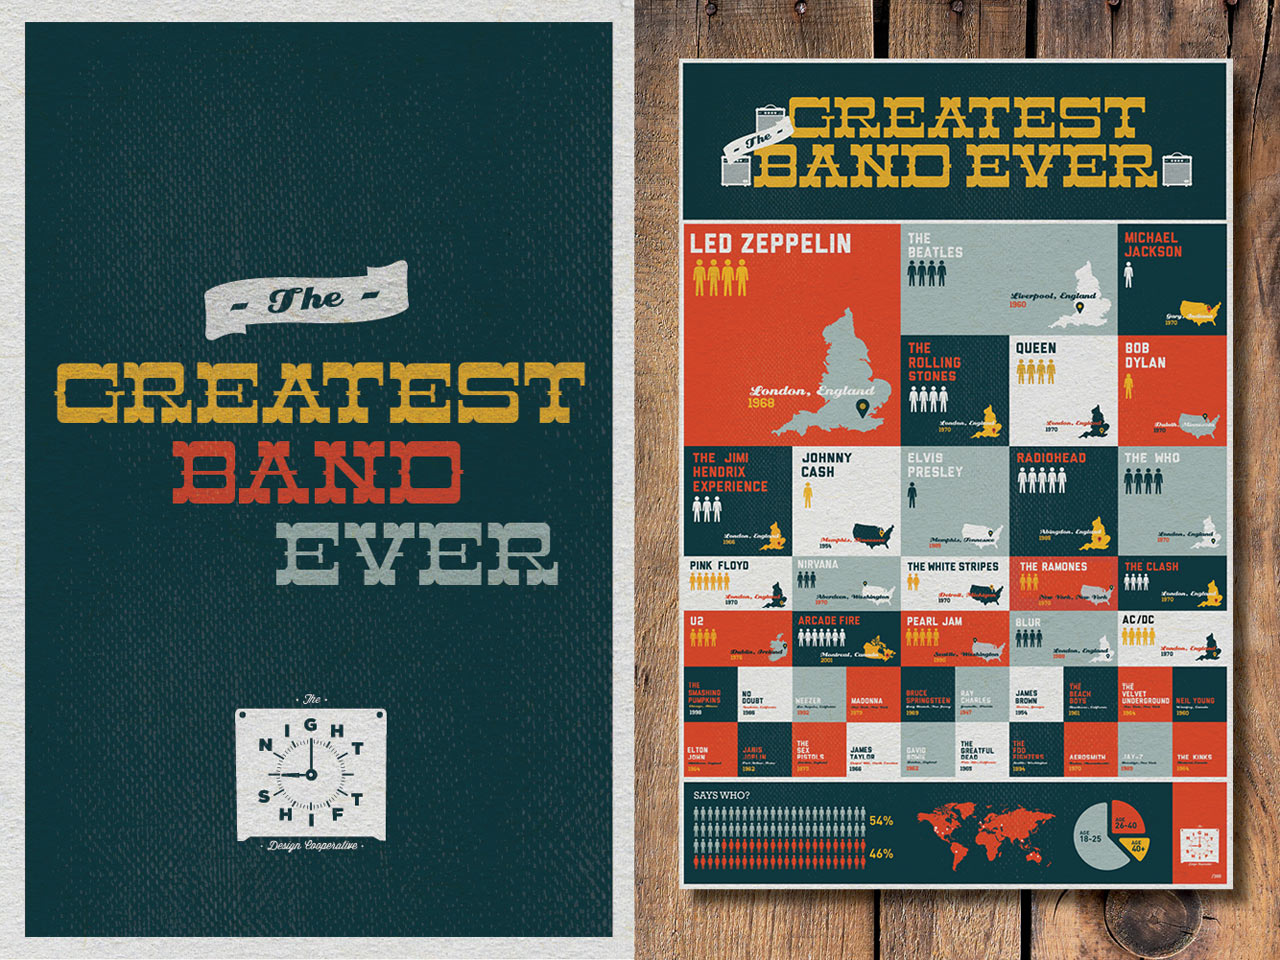 The Greatest Band Ever Print by The Night Shift Design Co-Op